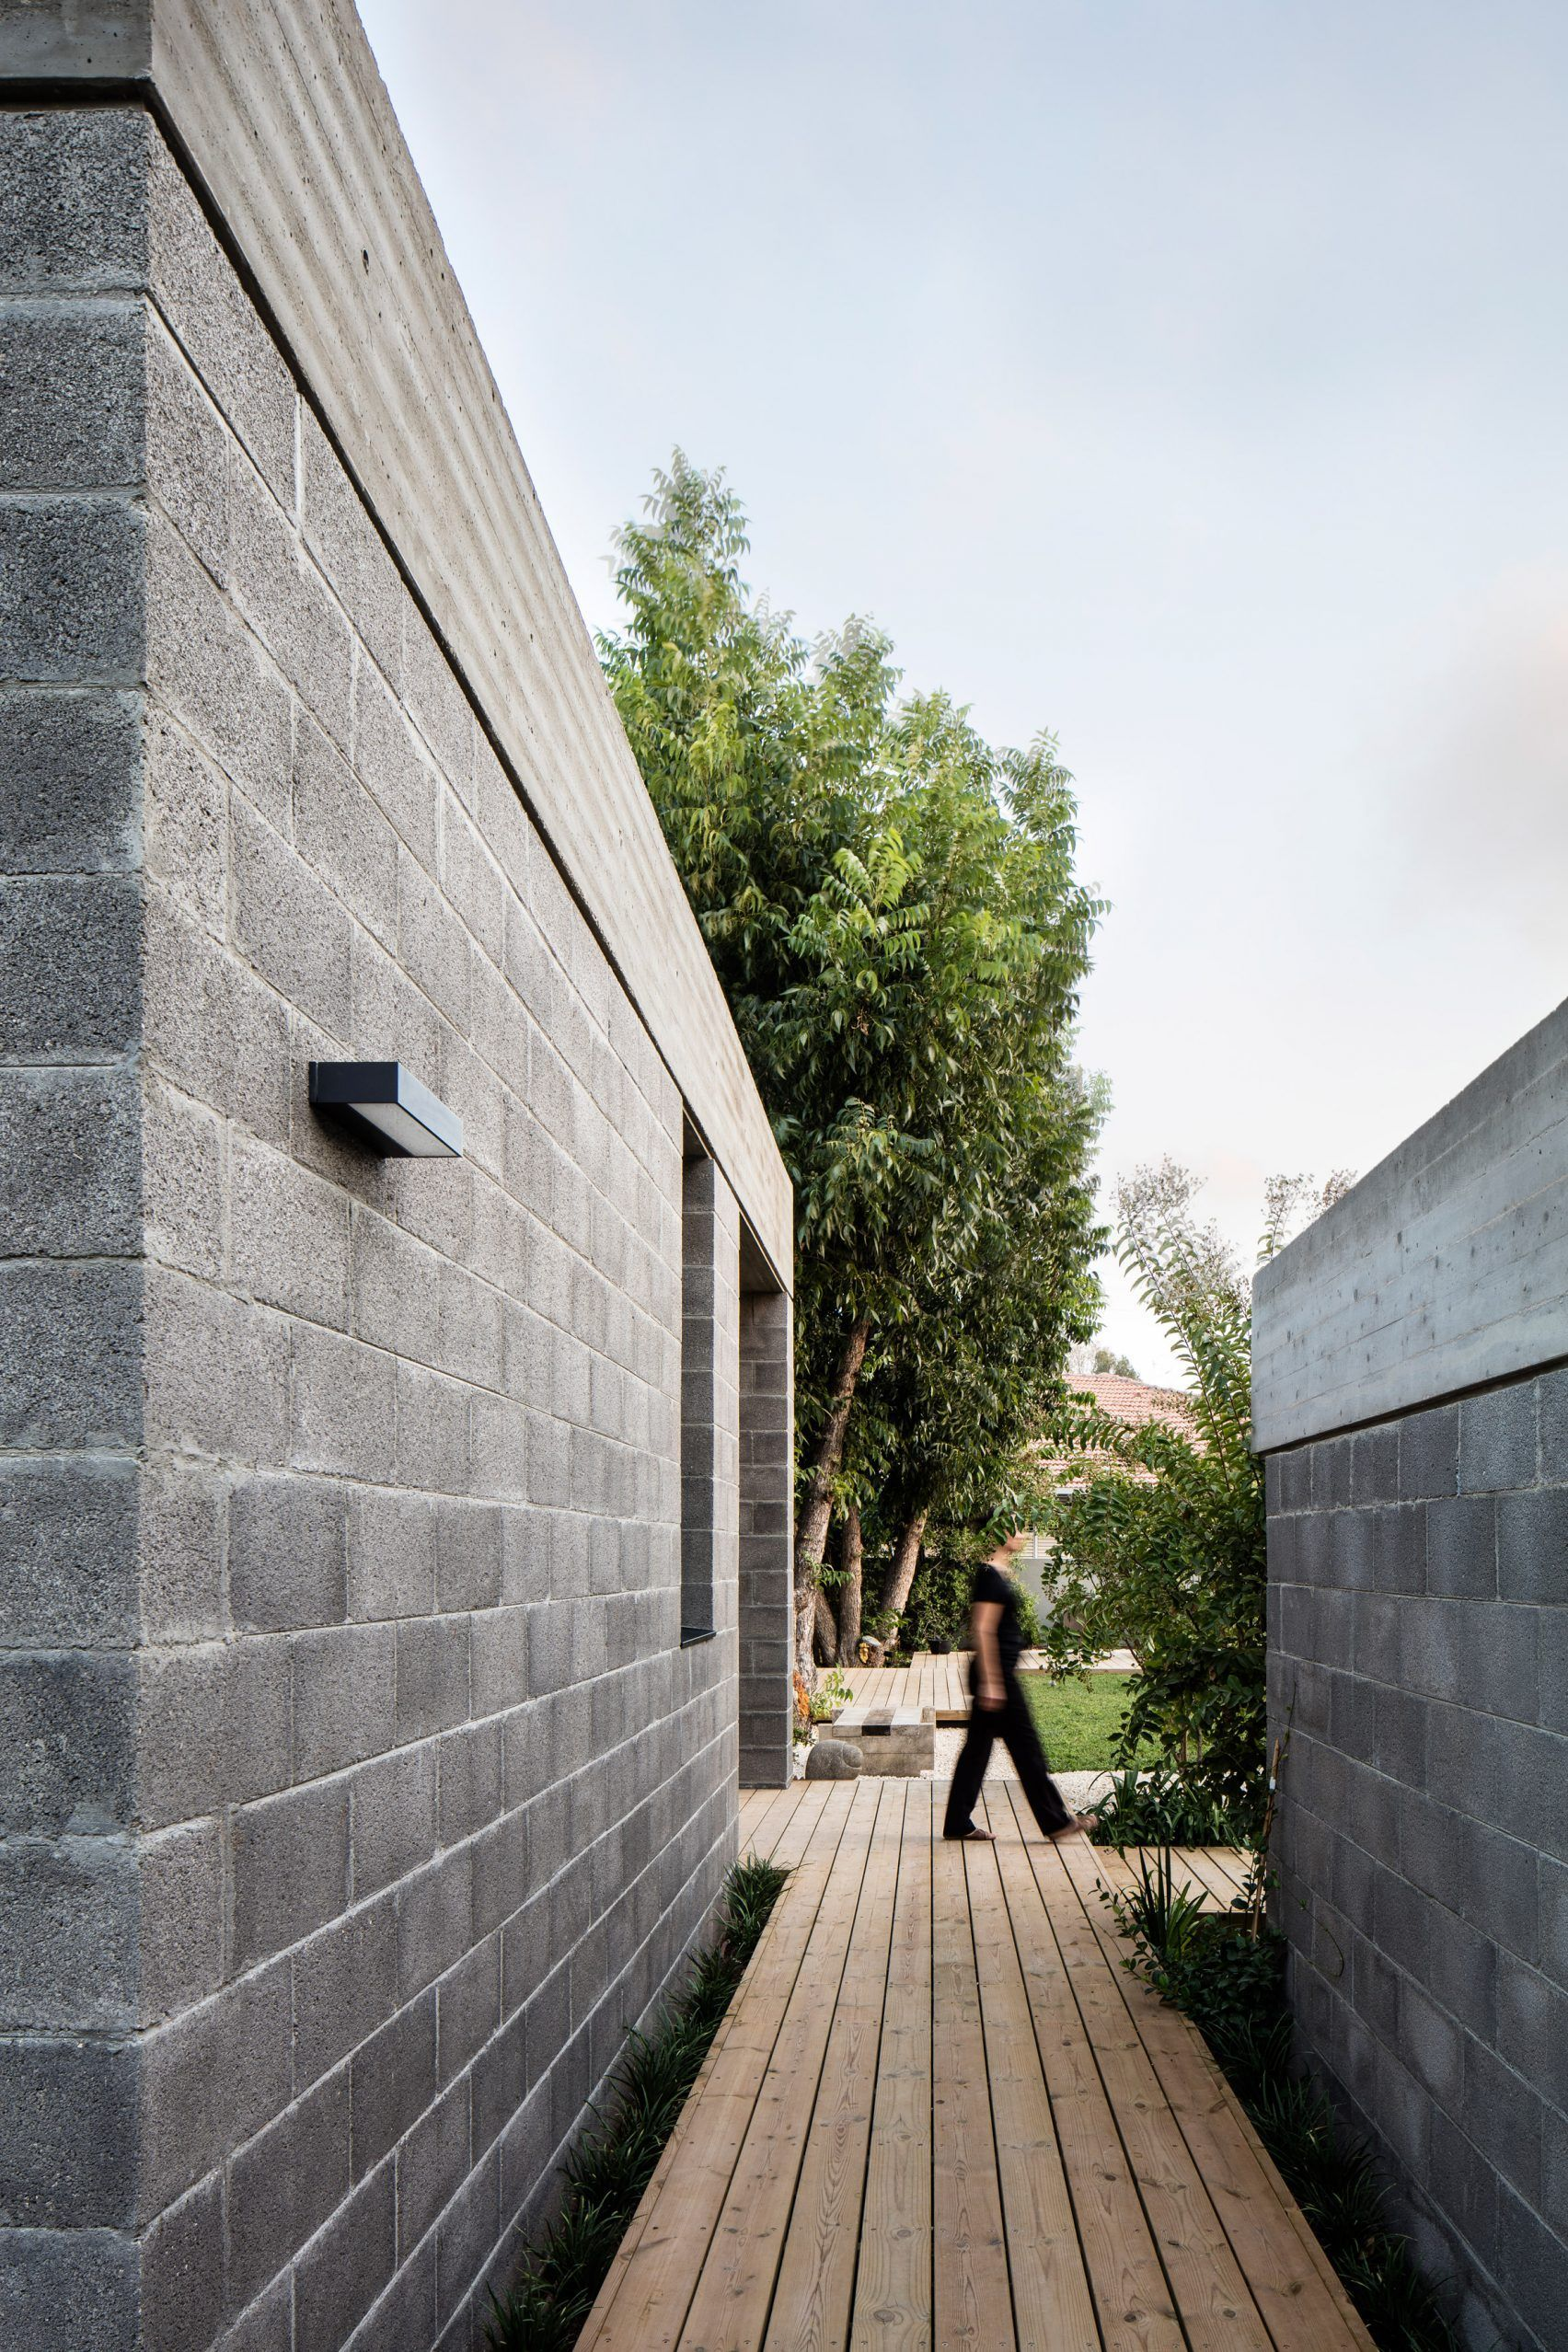 7 Sample Of Concrete Blocks Home For You Both Sorts Of Blocks Arrive In A Number Of Shapes And Modular Concrete Houses Cinder Block House Concrete Block Walls